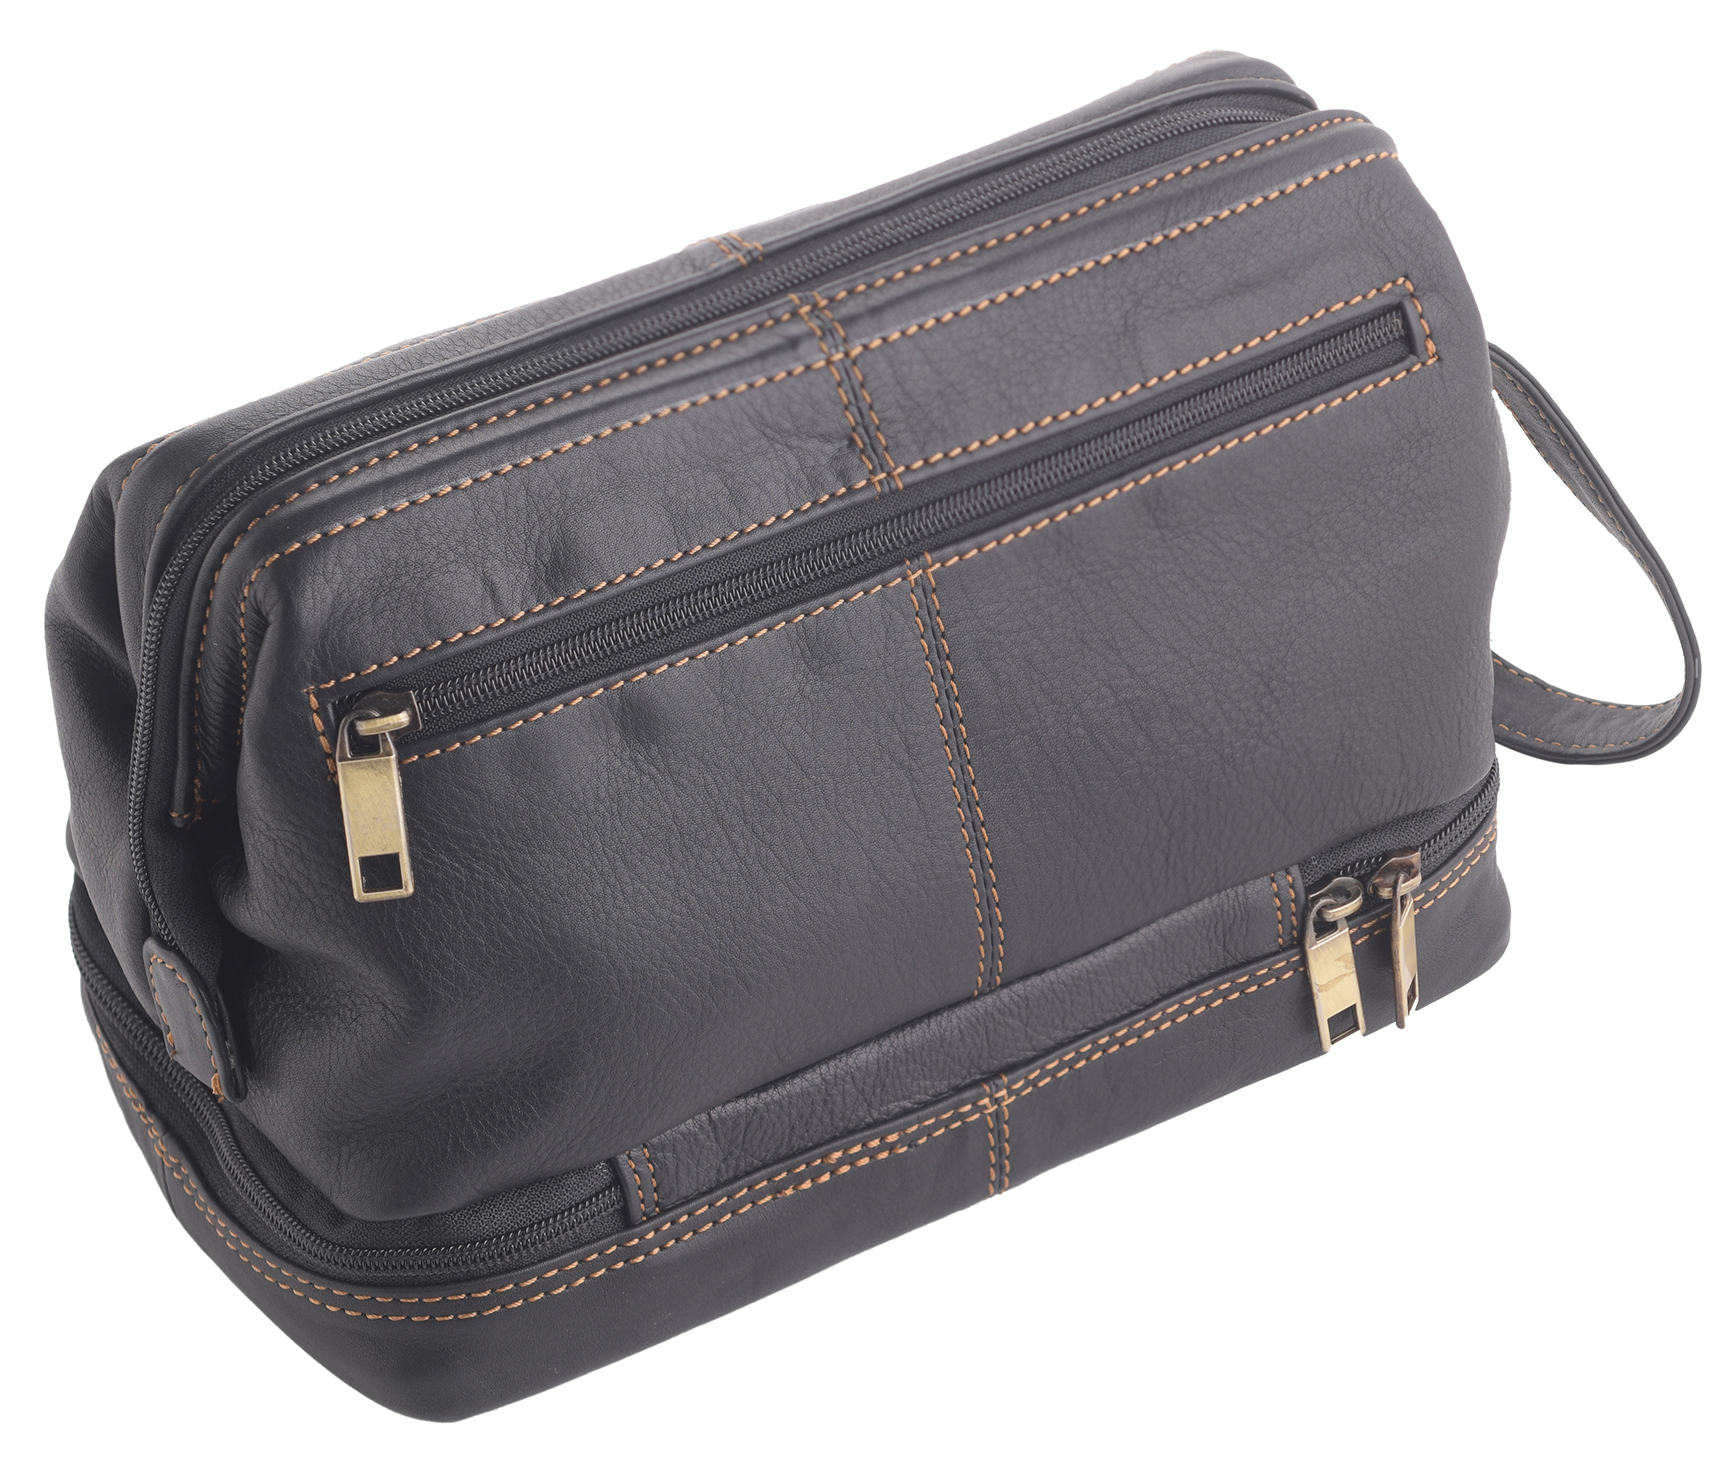 4dbaf19da460 Details about Mens Womens Wide Opening Quality Leather Wash Toiletry  Shaving Toiletry Bag